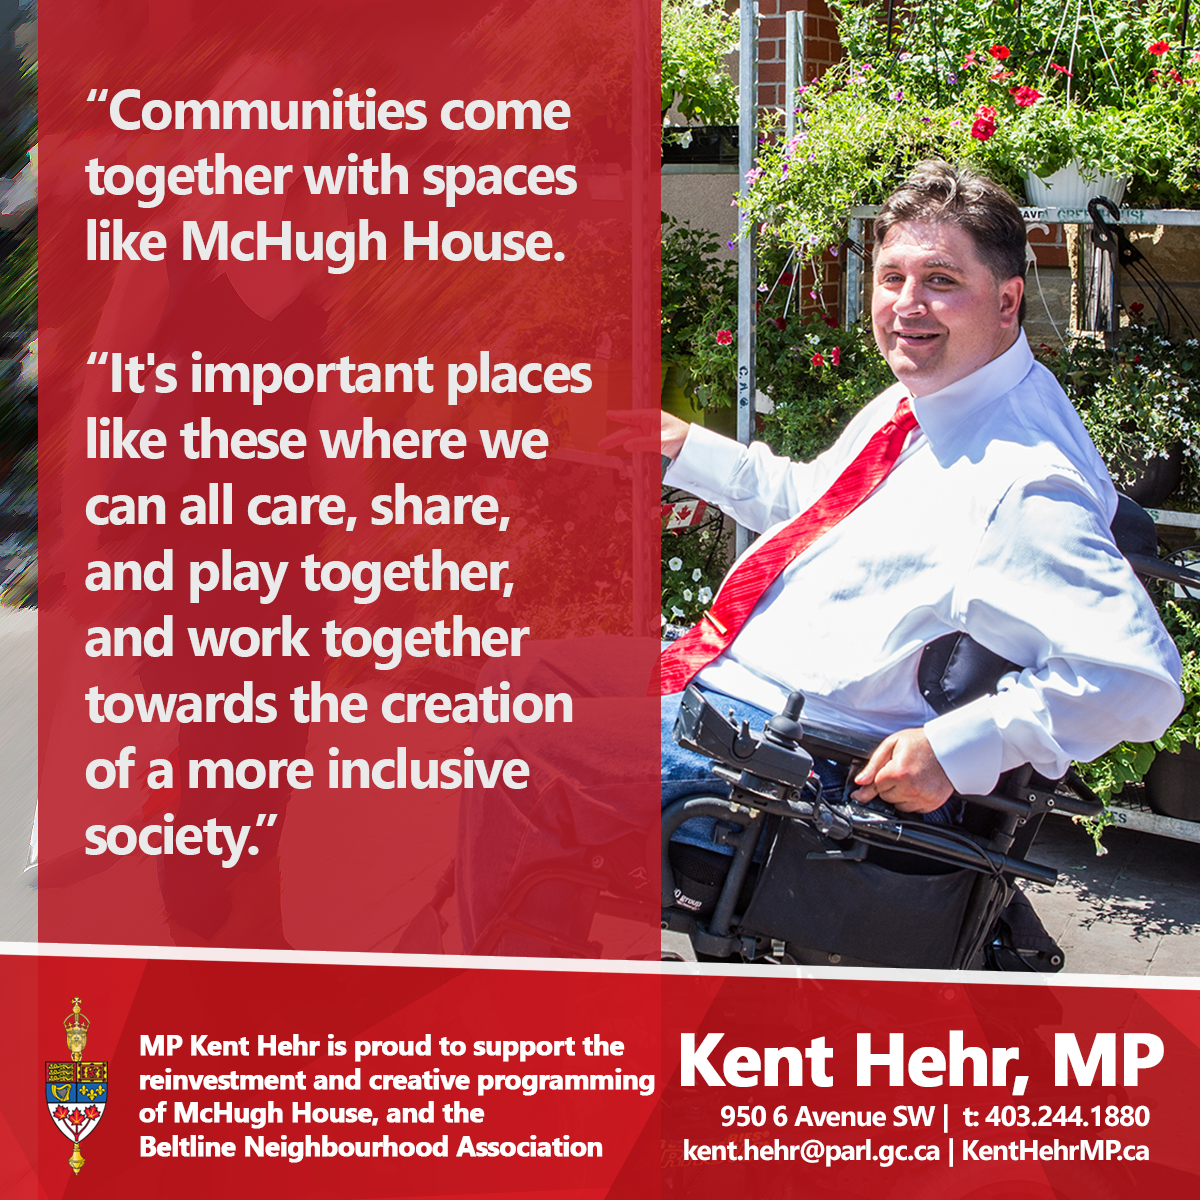 2017_06_11_Hehr_on_McHugh_House.png